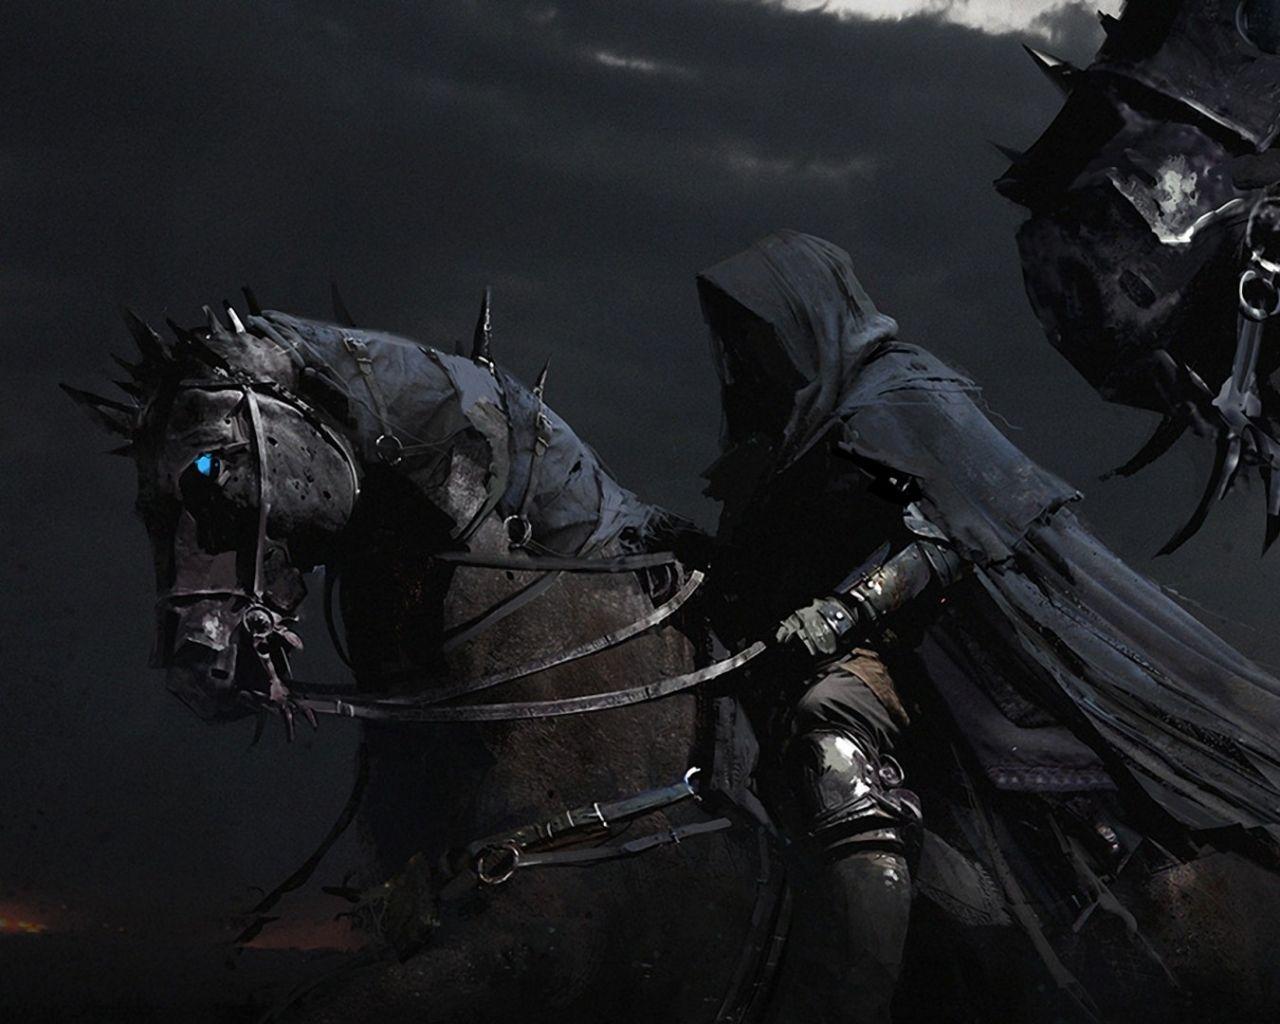 horses nazgul ringwraith lord of the rings online